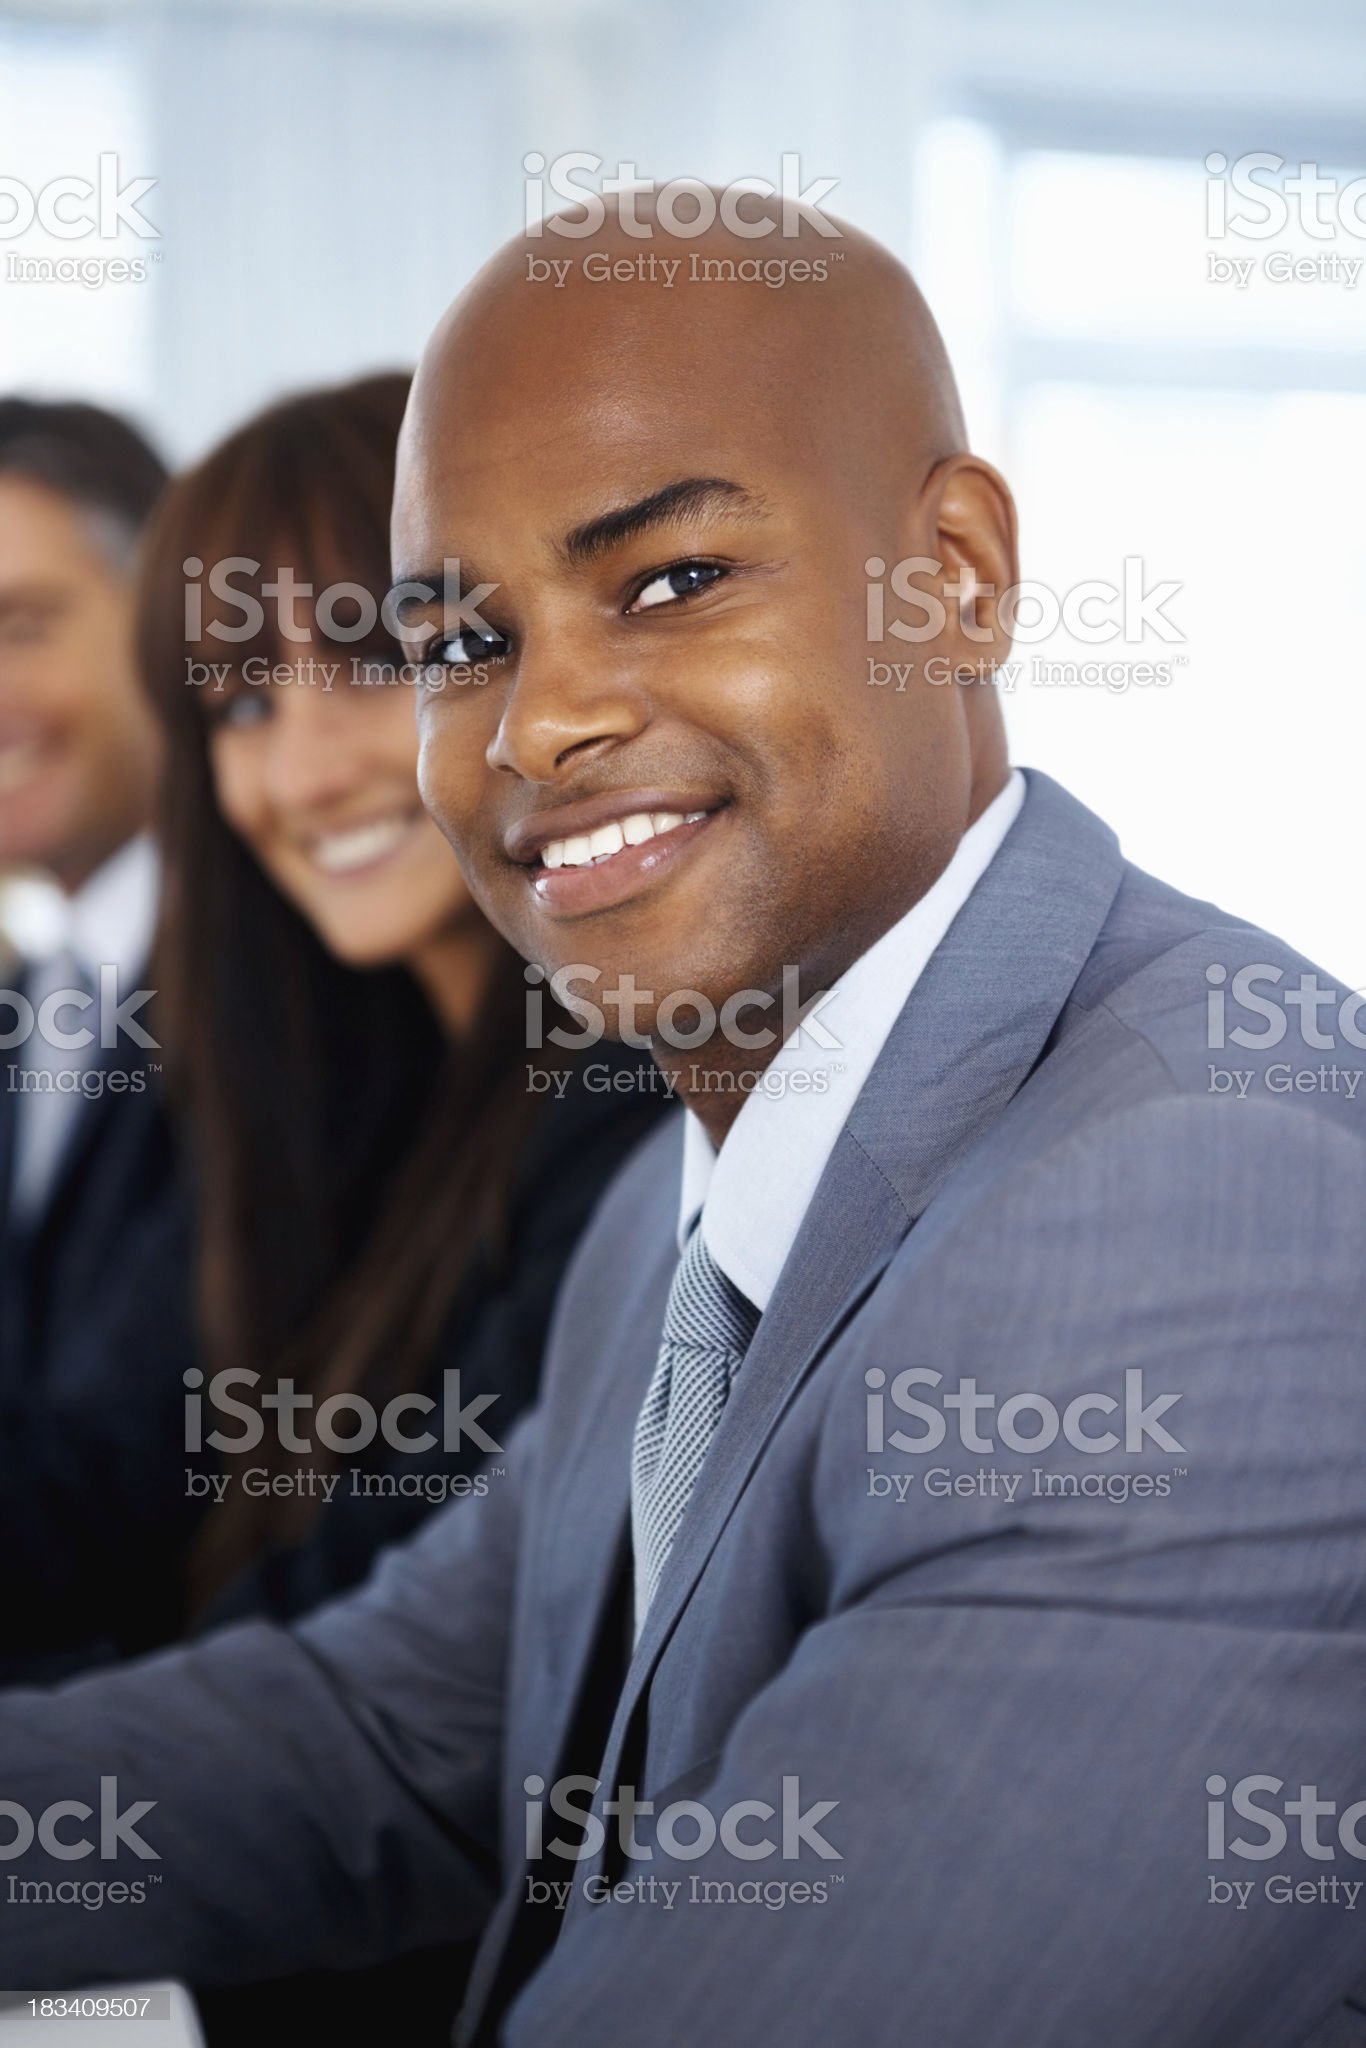 Confident business man with team in background royalty-free stock photo